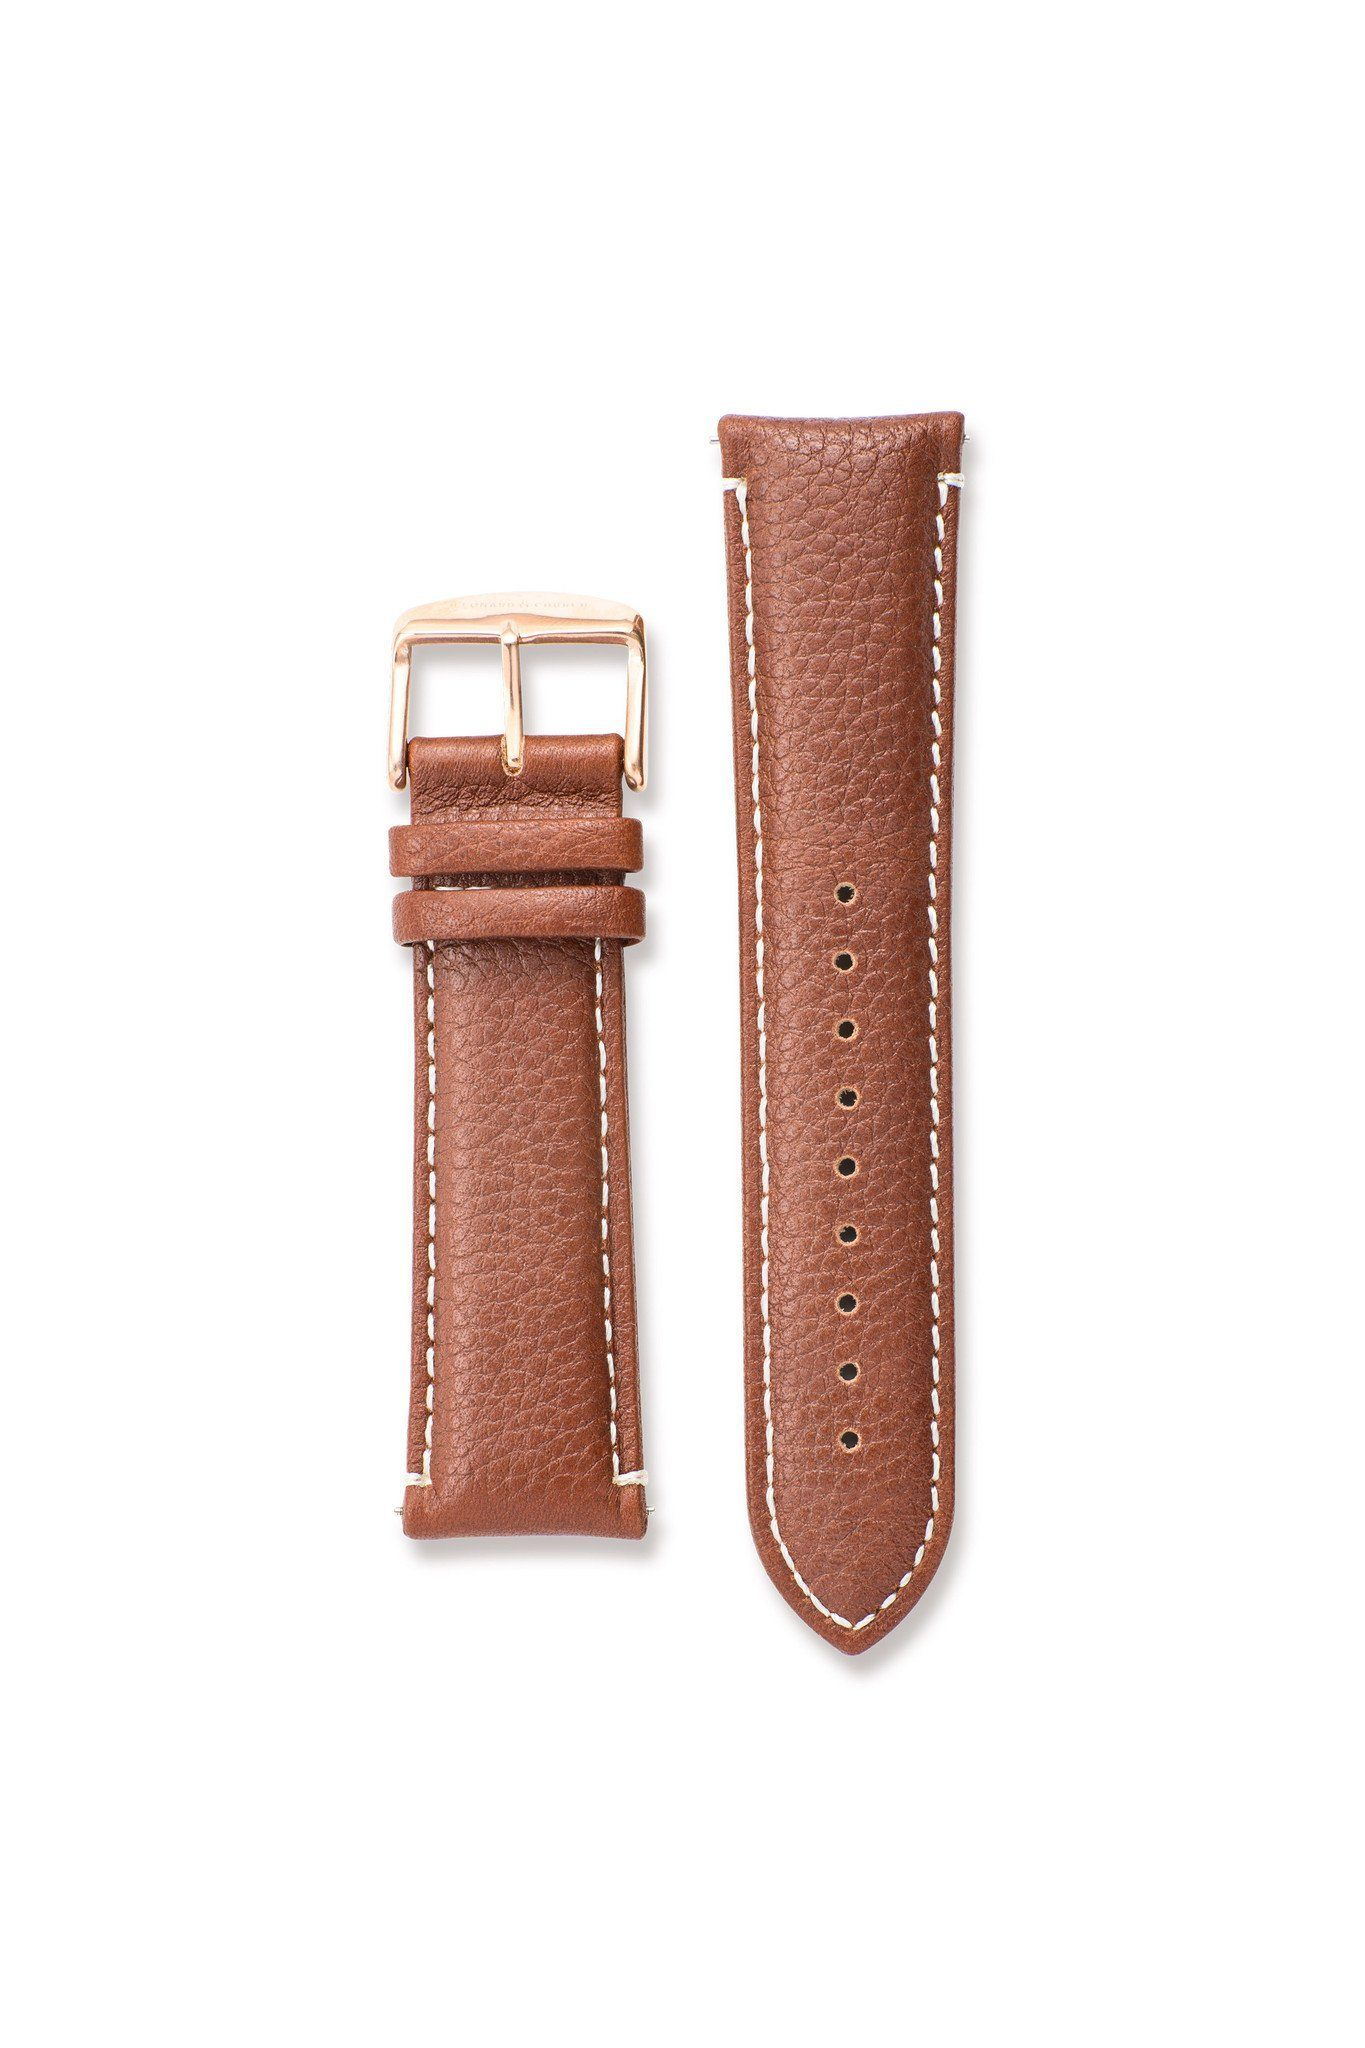 Strap - Textured Genuine Leather Brown / Rose Gold Strap